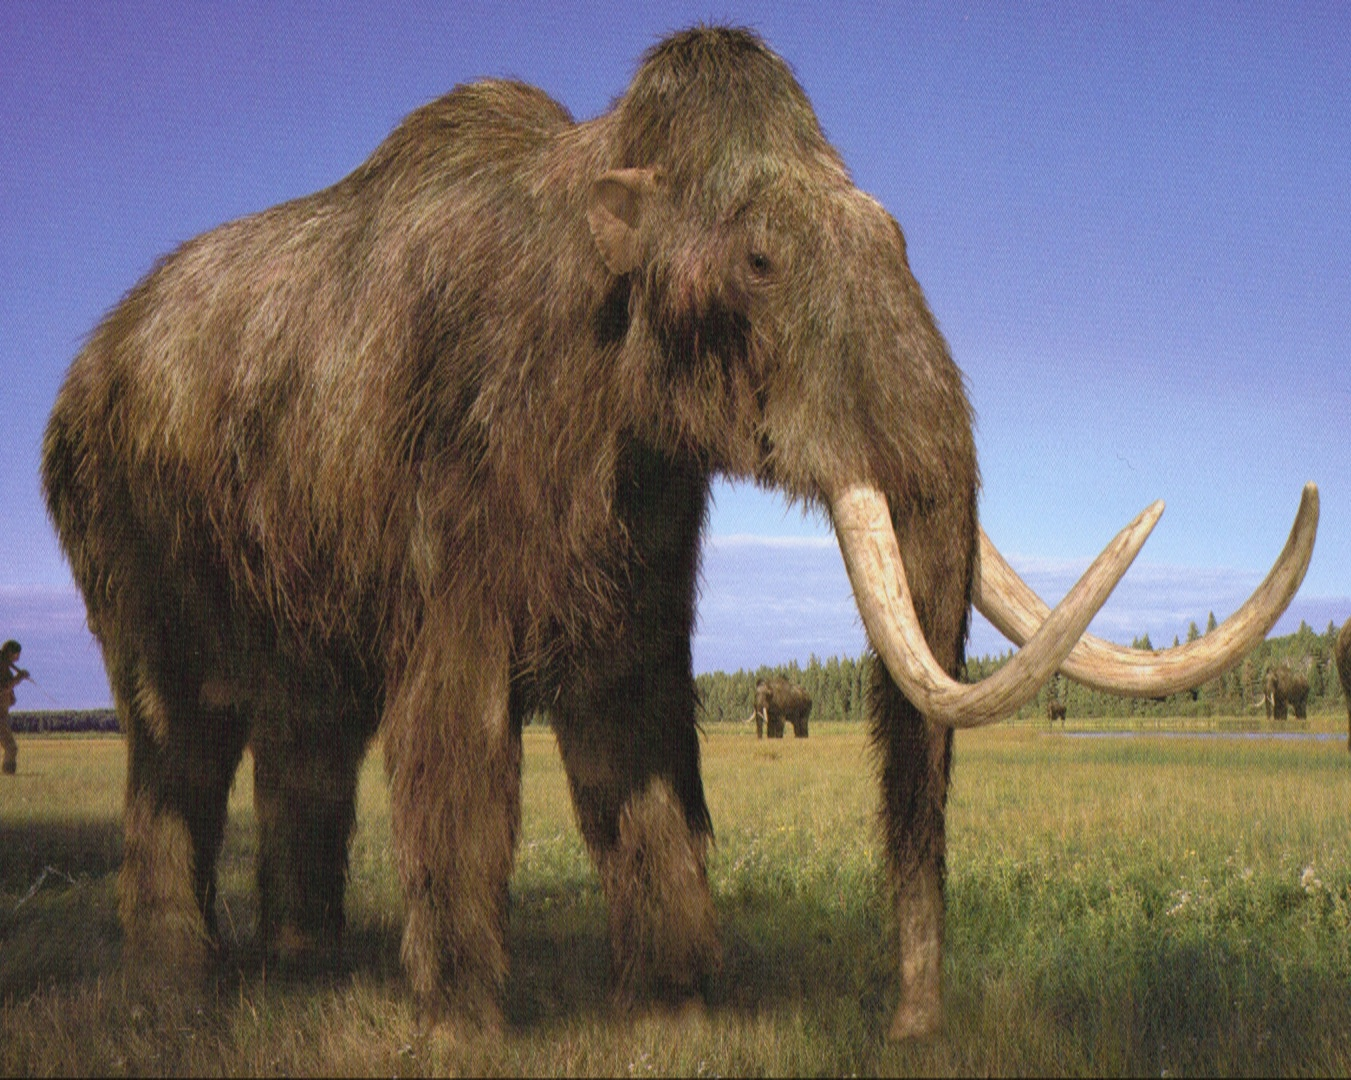 Woolly mammoths return from dead: Furry mammals could be CLONED